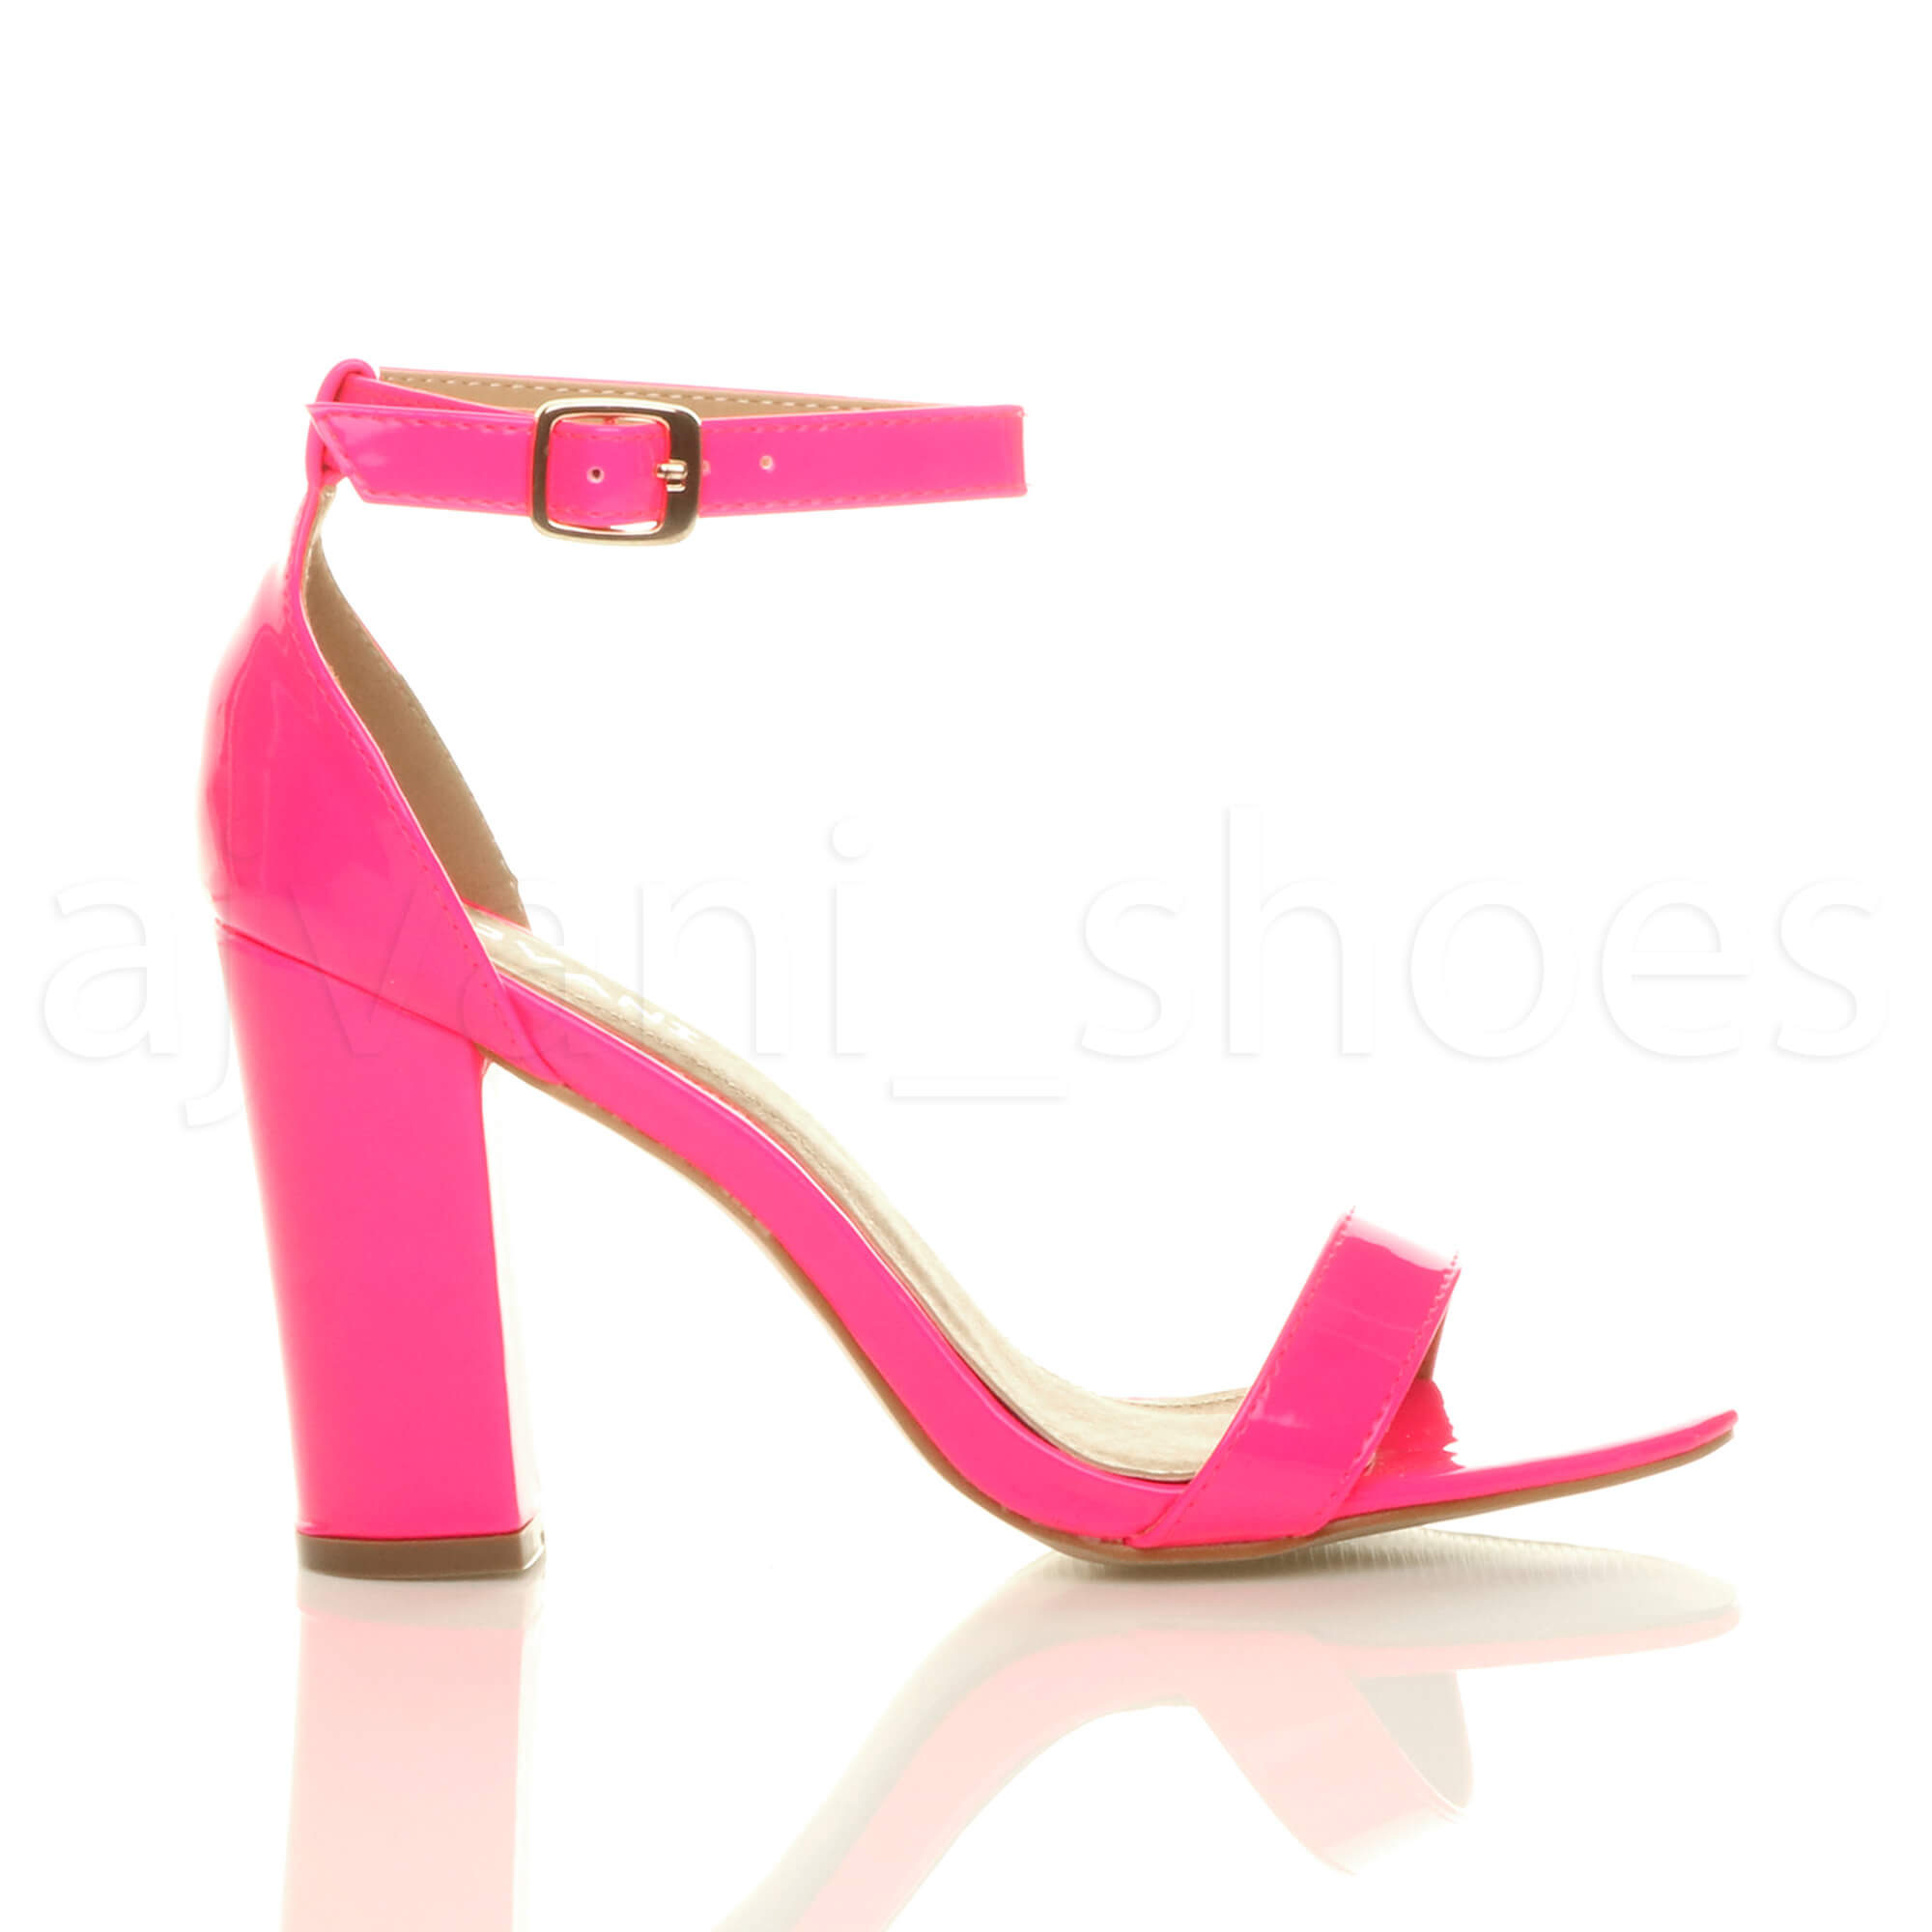 WOMENS-LADIES-BLOCK-HIGH-HEEL-ANKLE-STRAP-PEEP-TOE-STRAPPY-SANDALS-SHOES-SIZE thumbnail 89